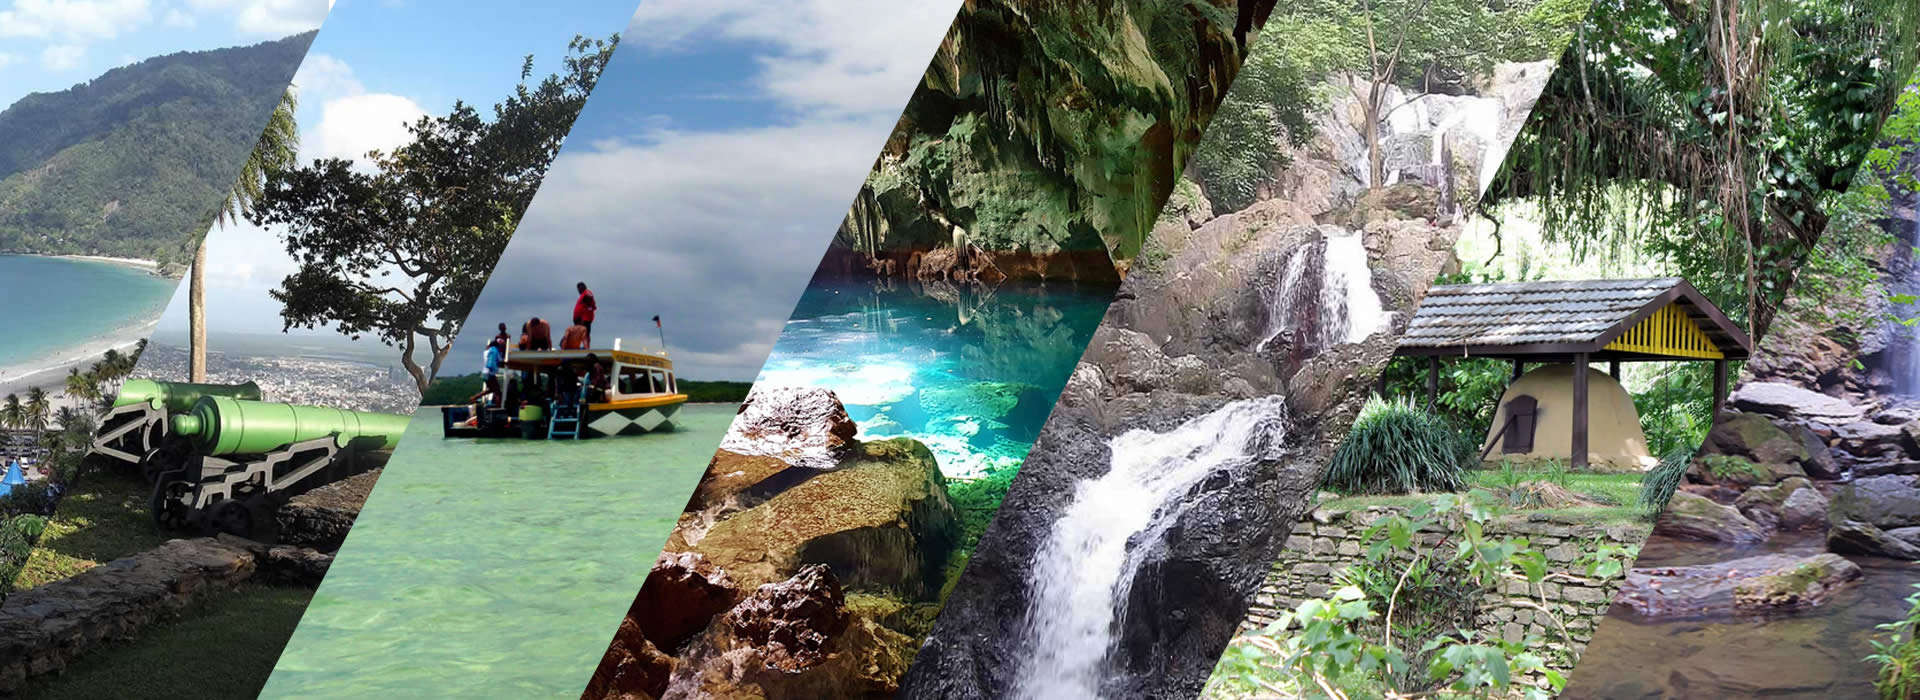 The most visited destinations in T&T in 2017